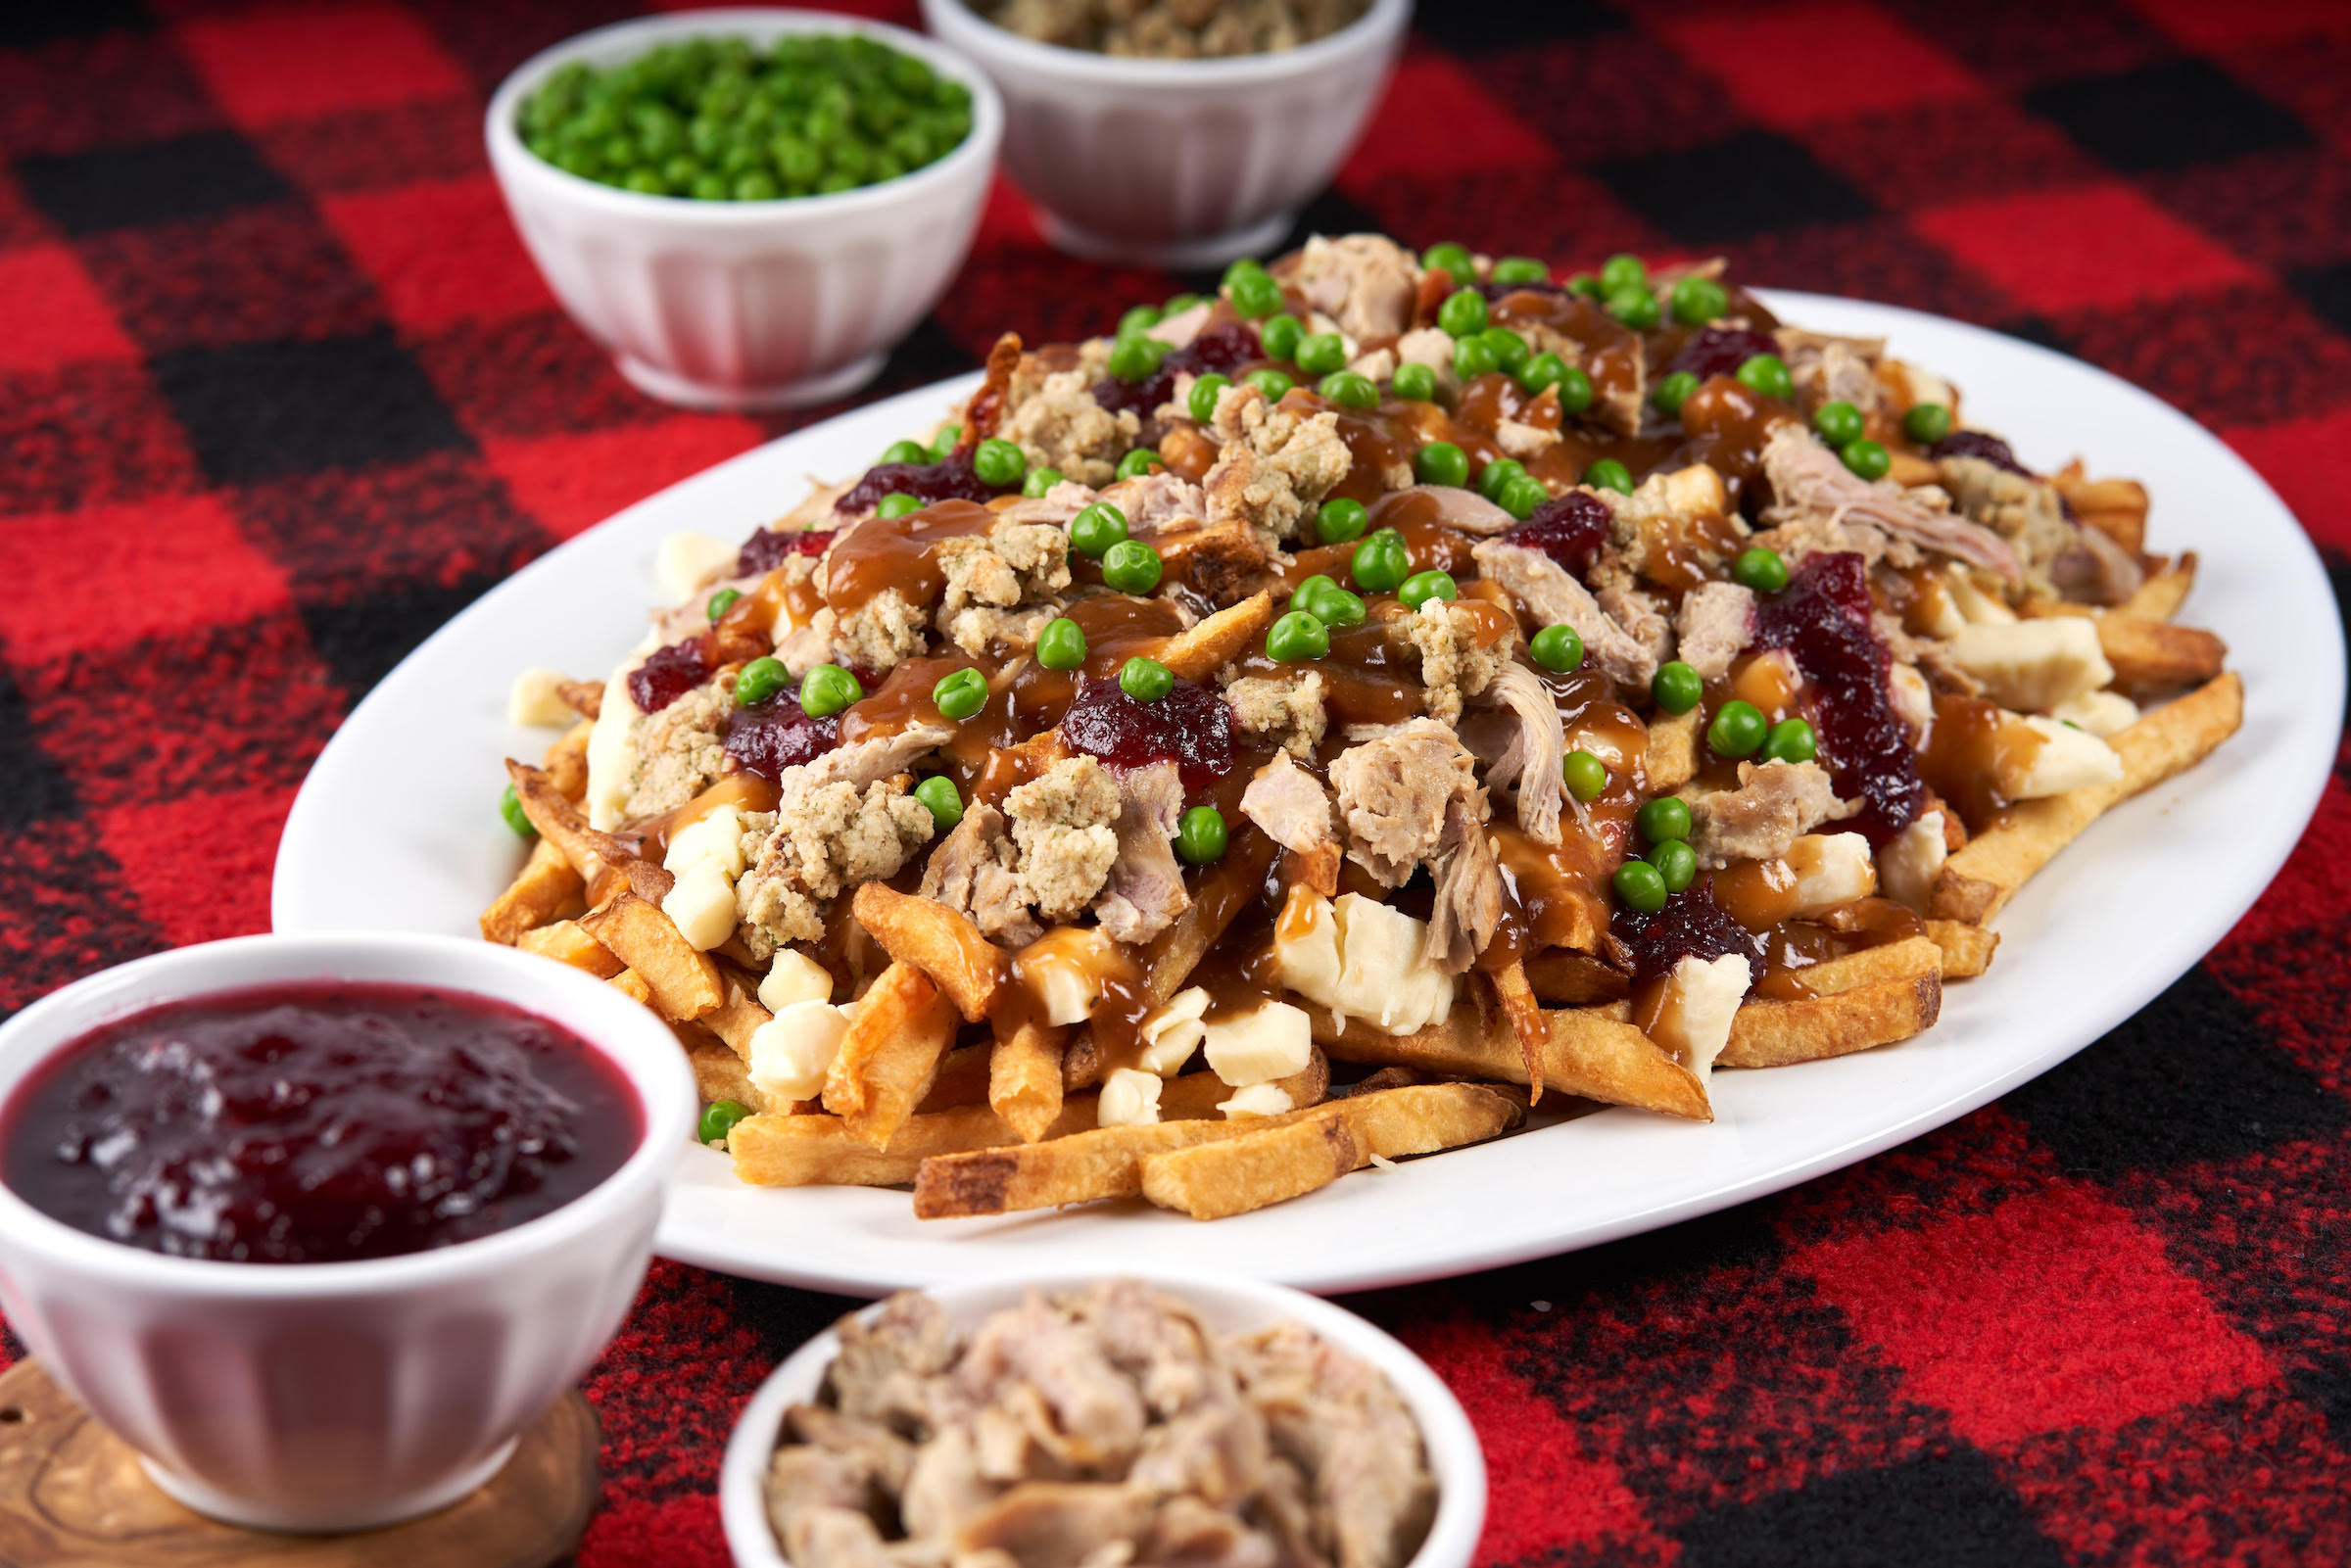 Gastronomical Thanksgiving Poutine Returns with Donations going to Friends of We Care